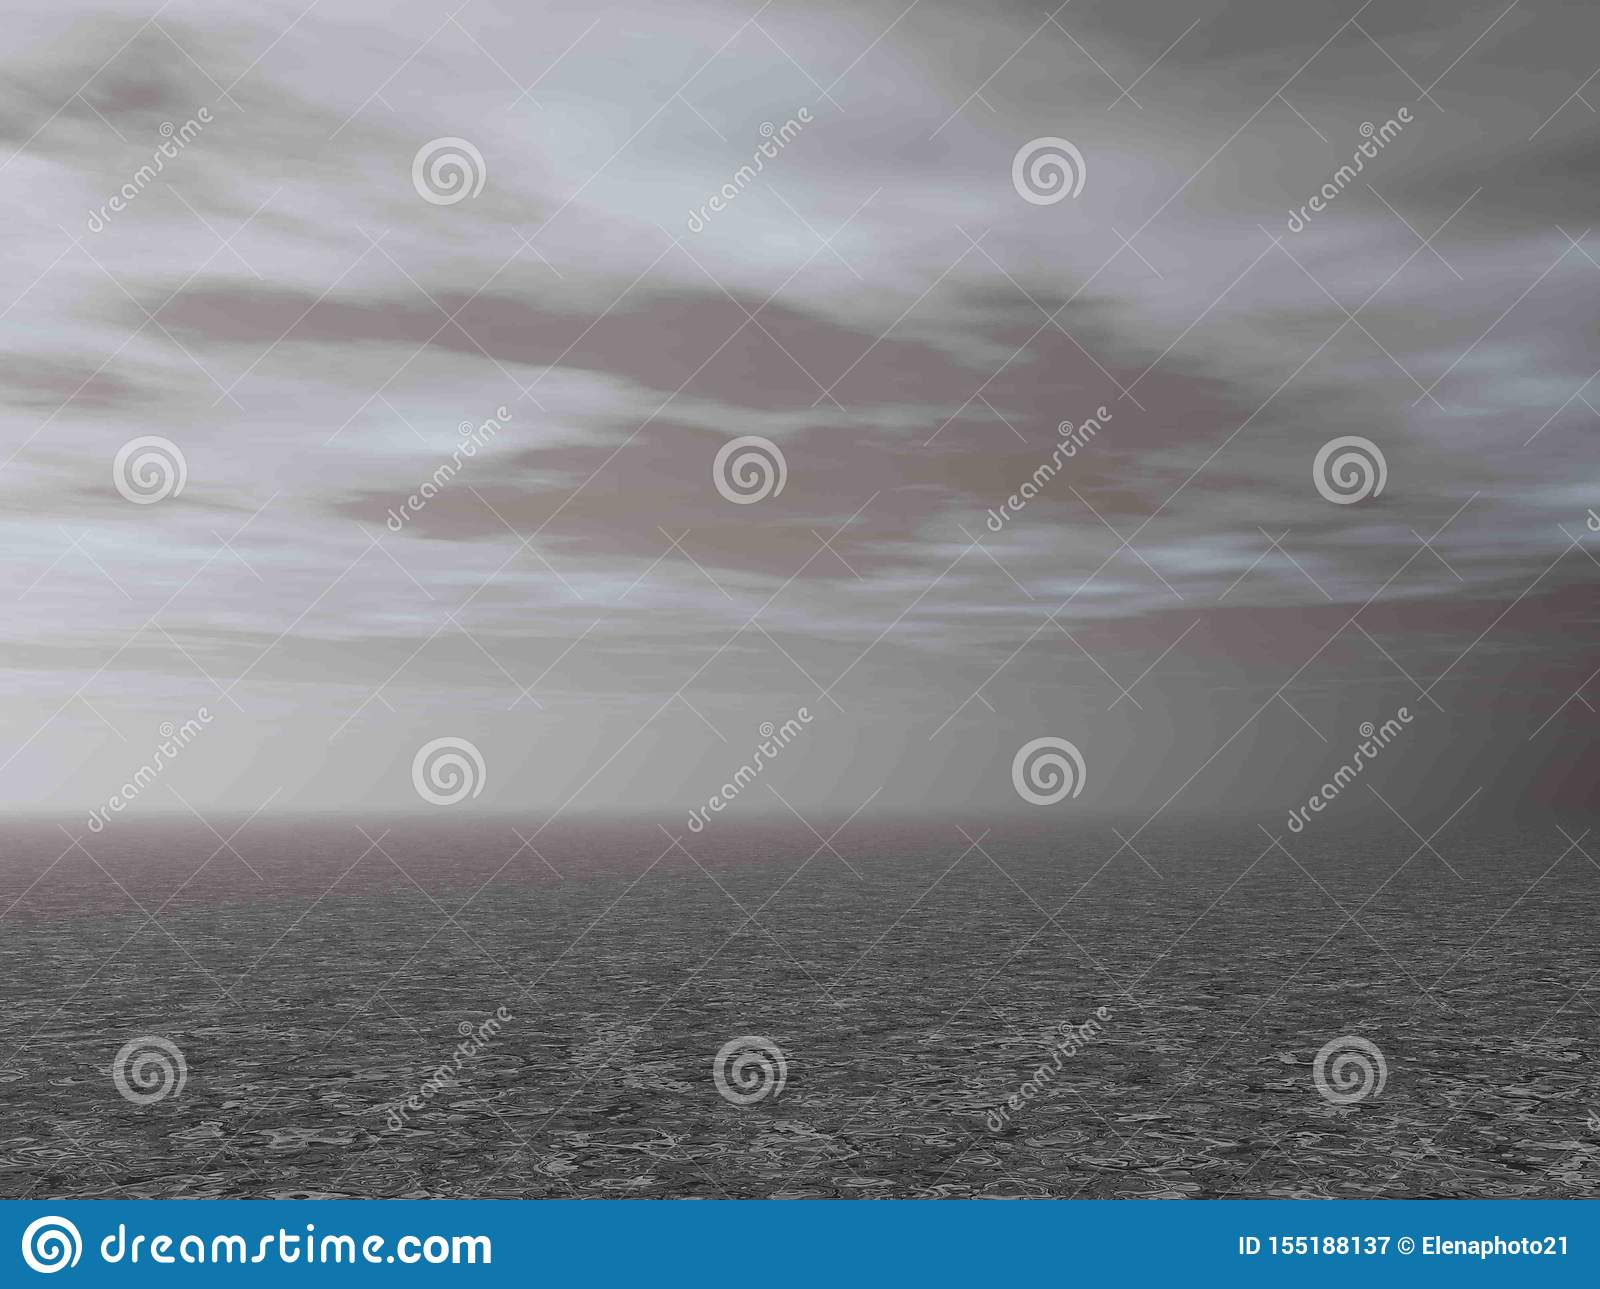 Grey ground by cloudy morning background - 3D render